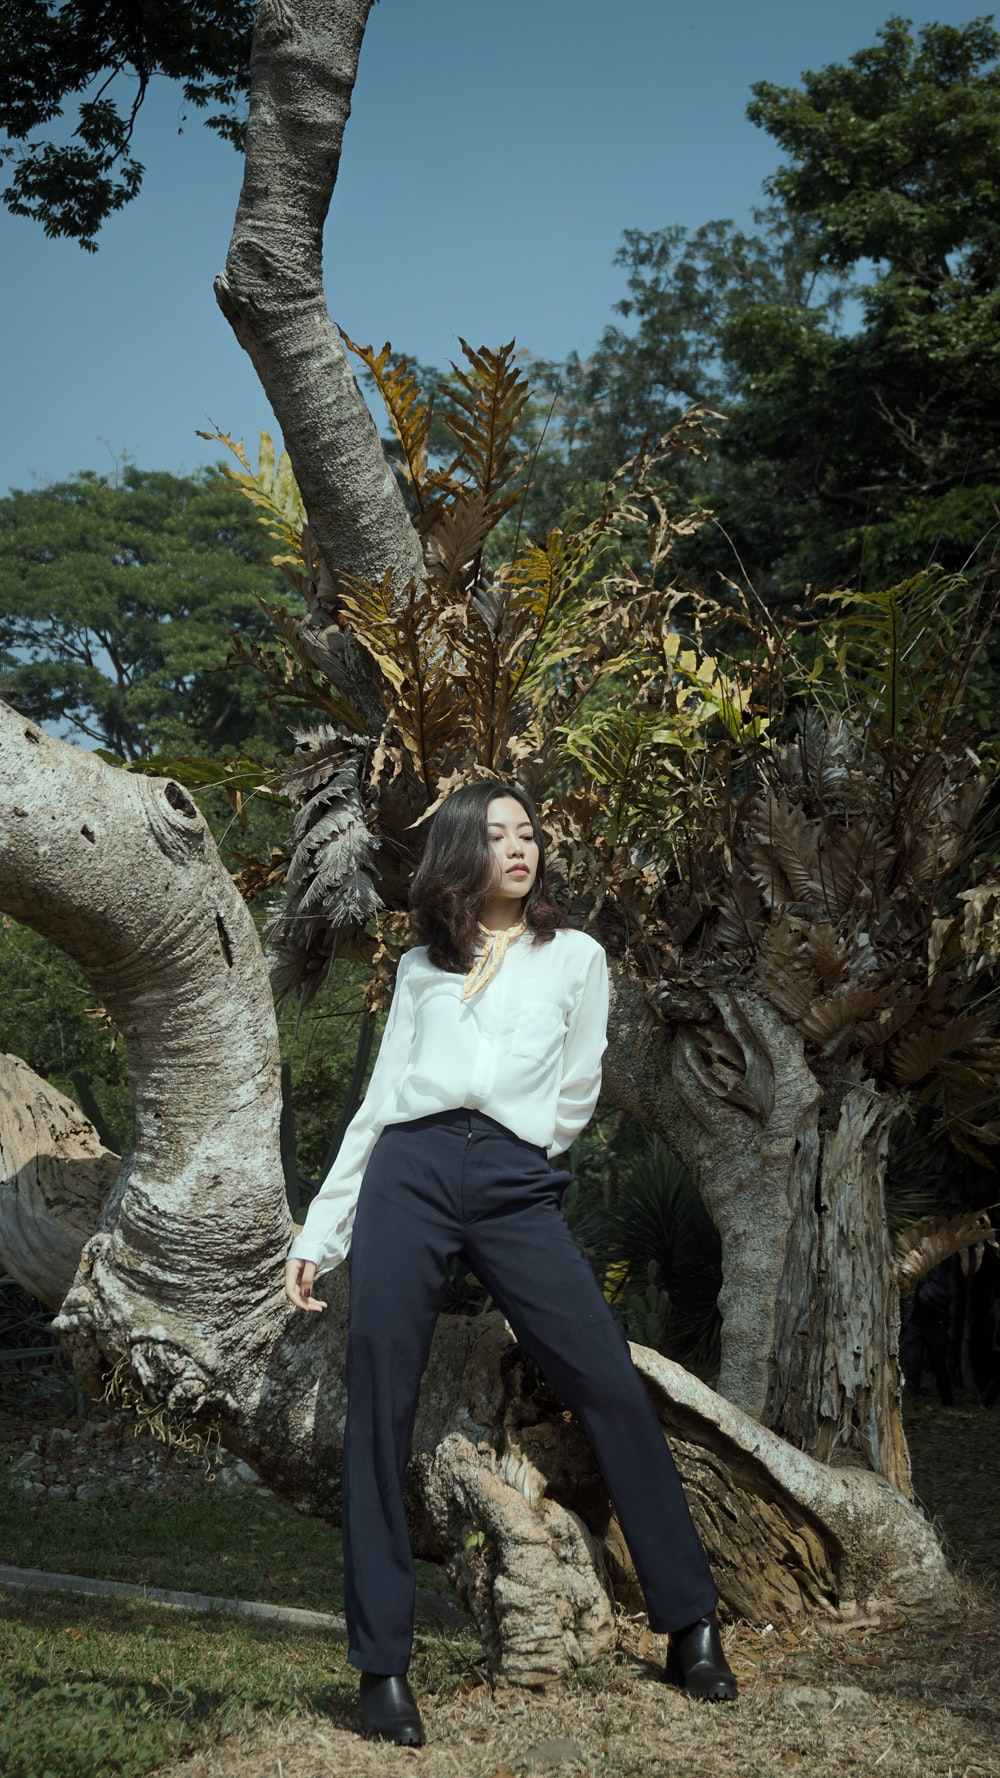 woman in white long sleeve shirt and black pants sitting on tree branch during daytime